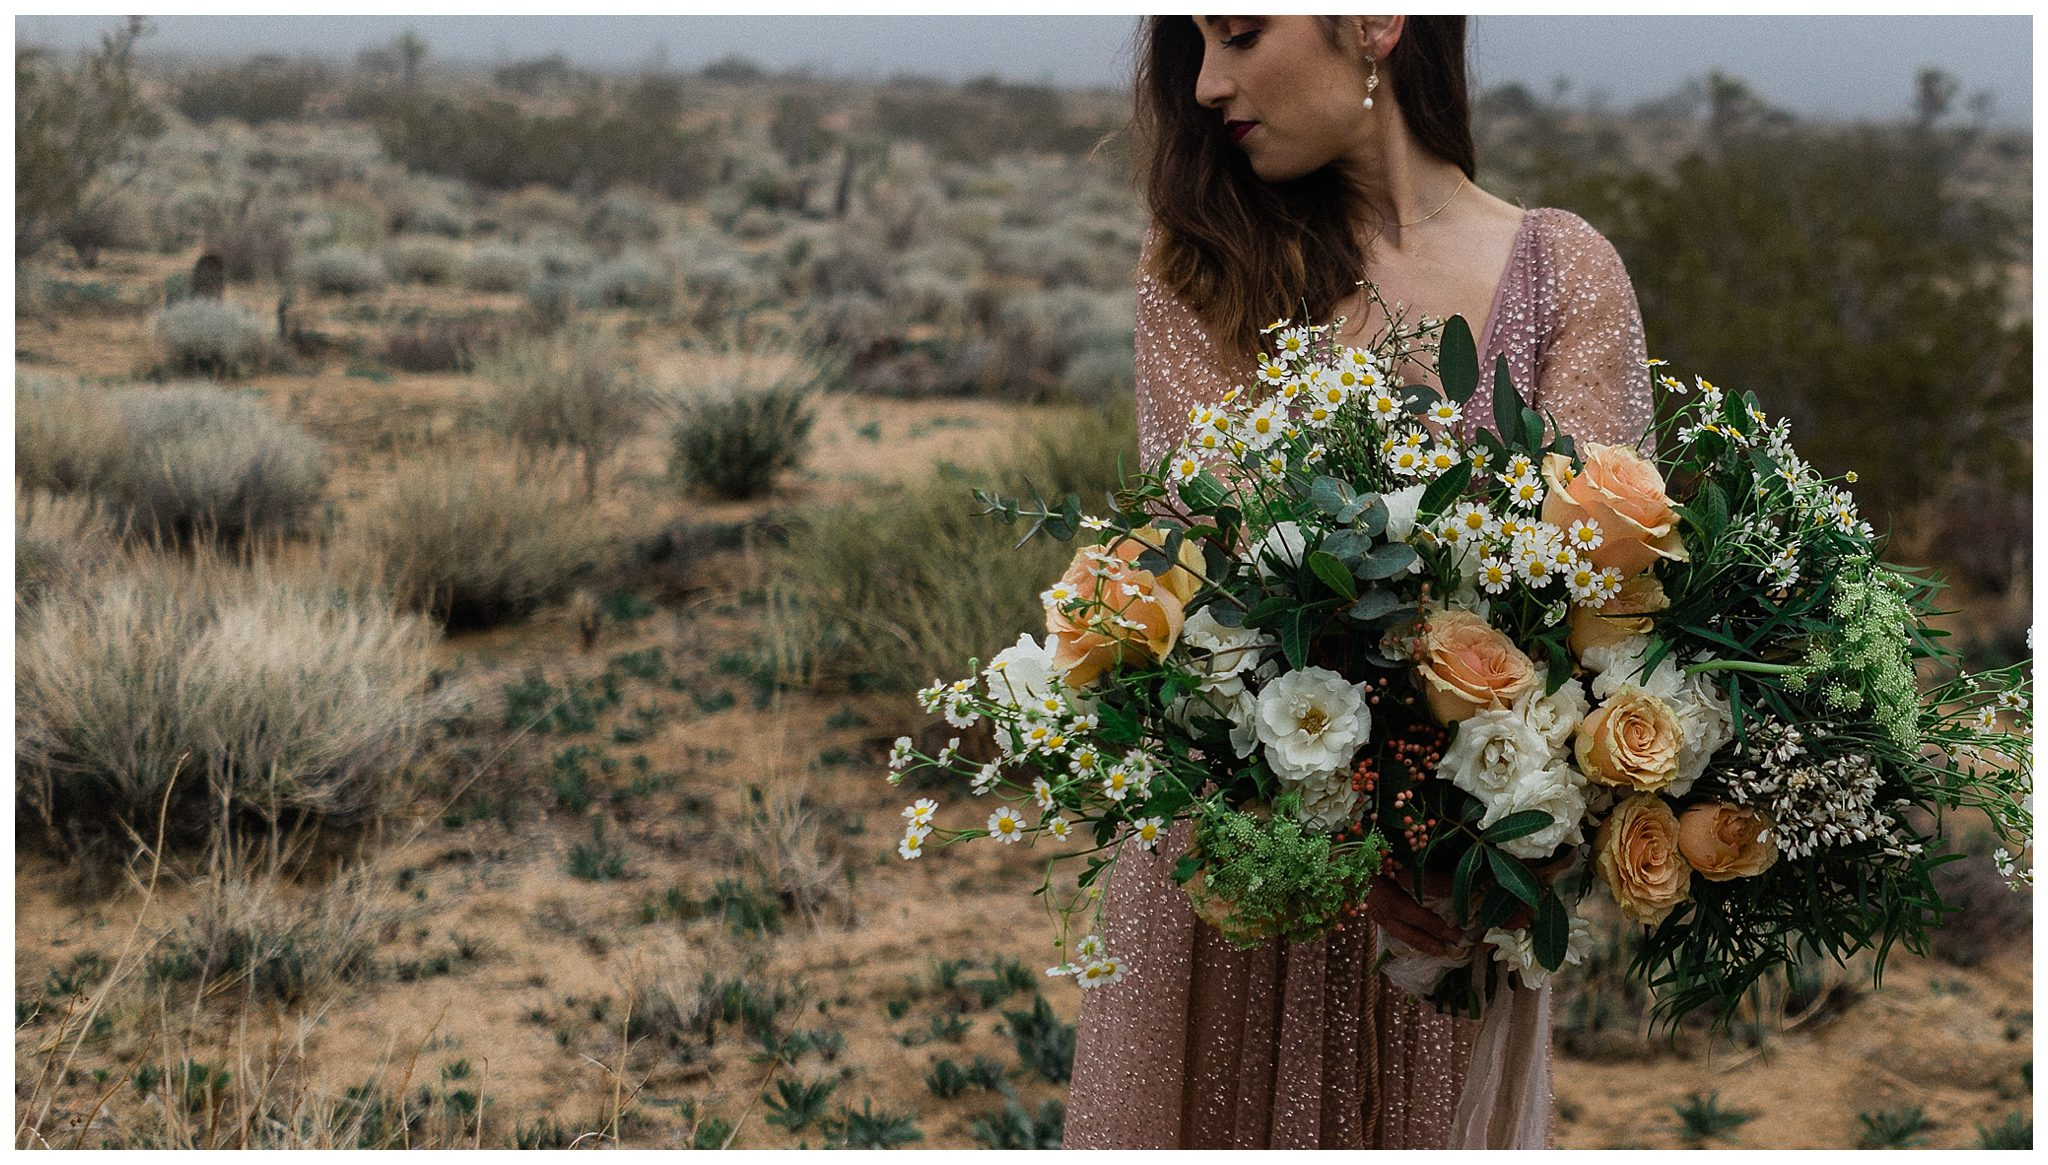 Joshua Tree National Park Elopement Style Vow Renewal